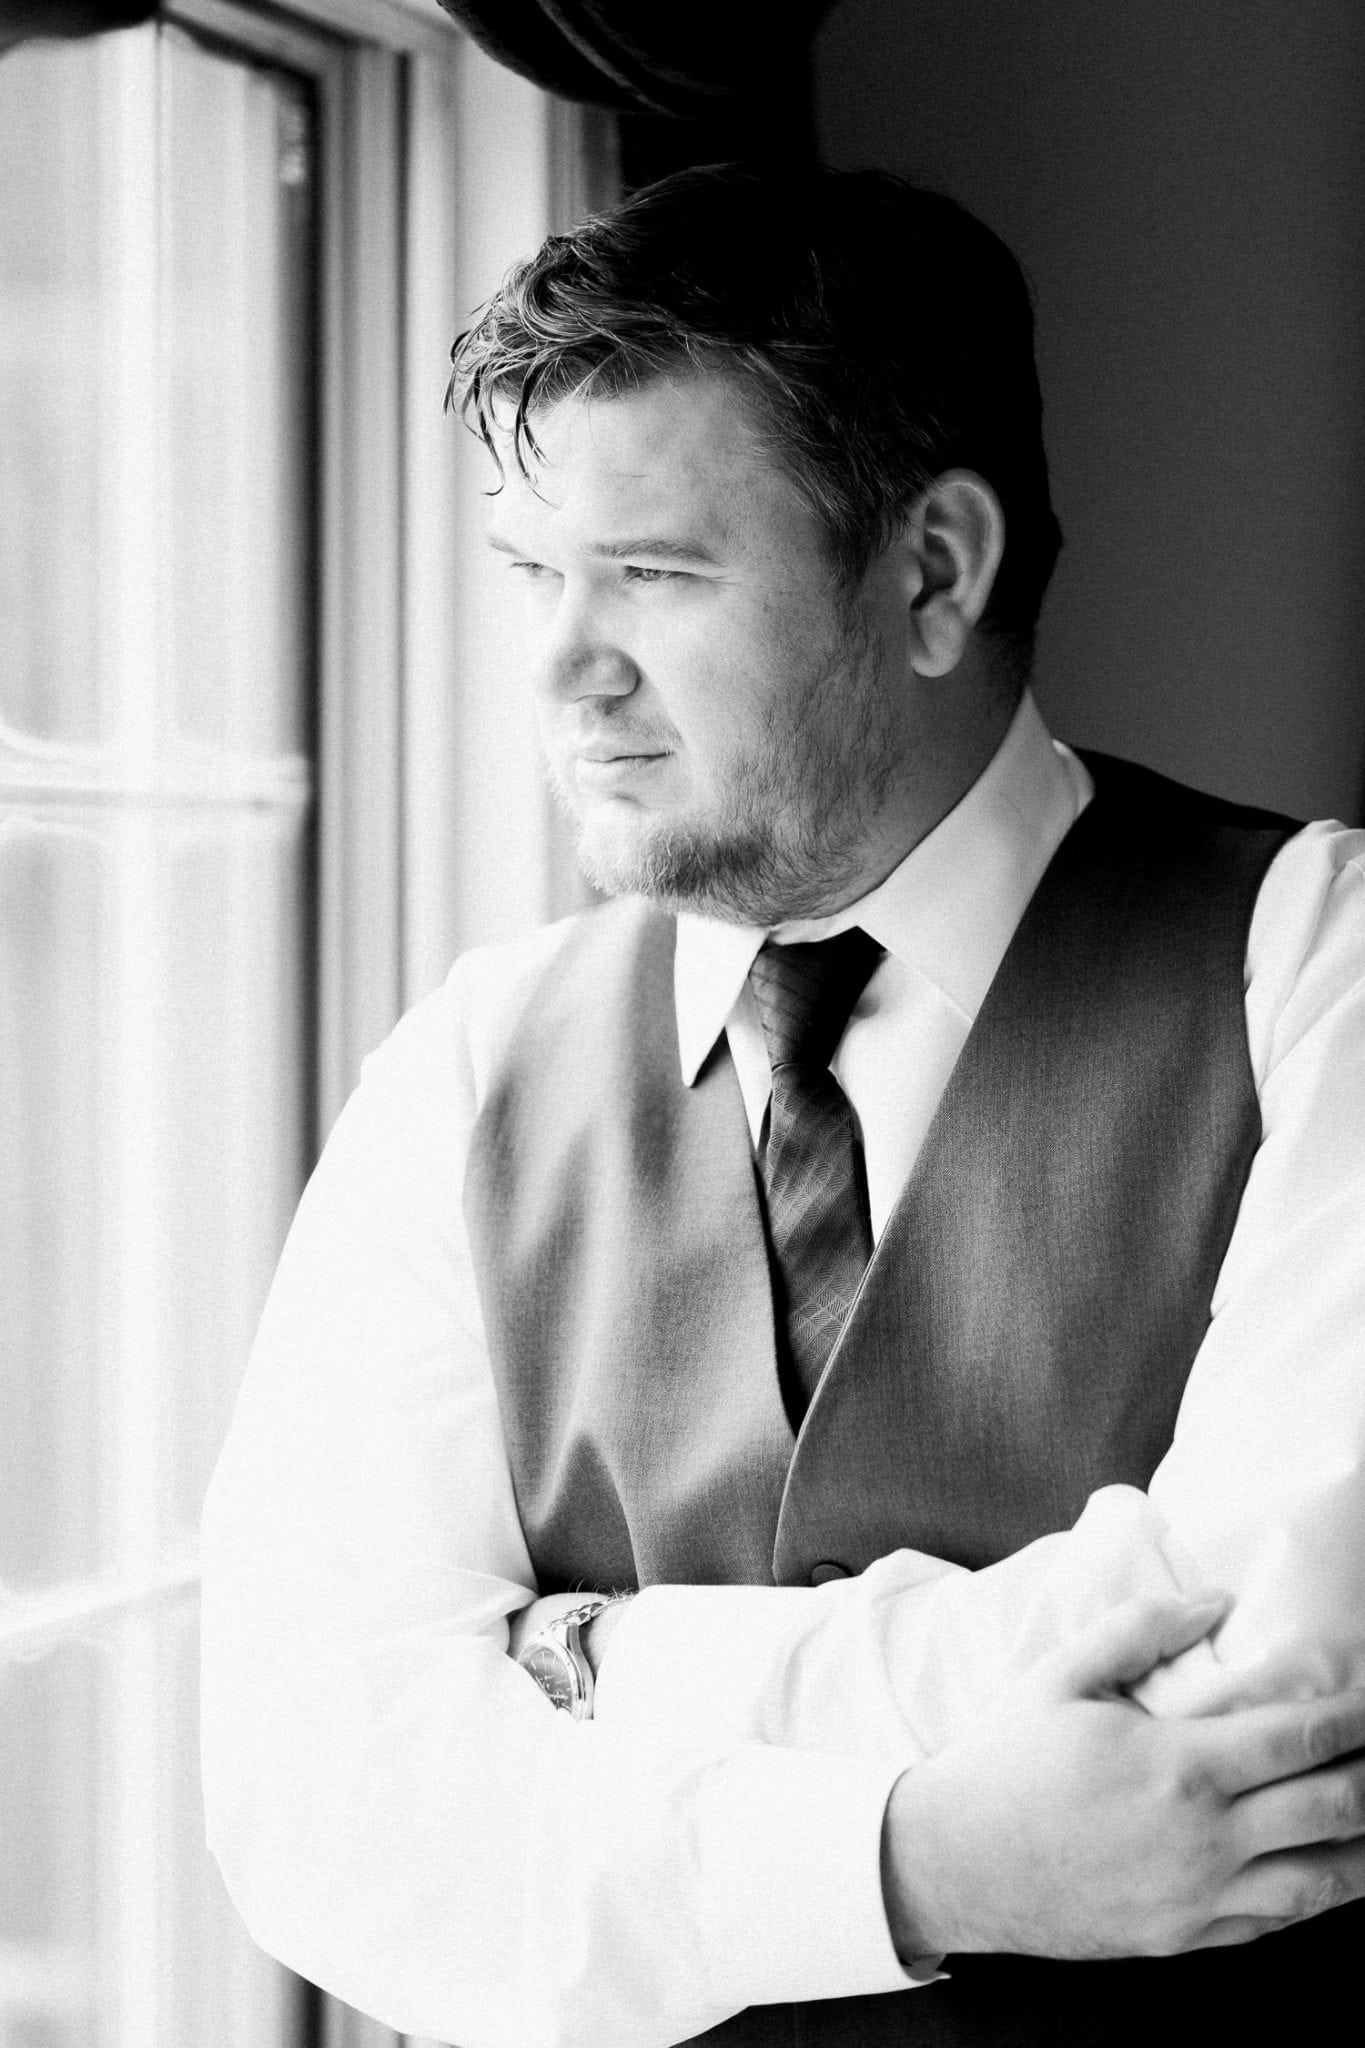 Groom during morning prep in b/w | Vancouver wedding photographer